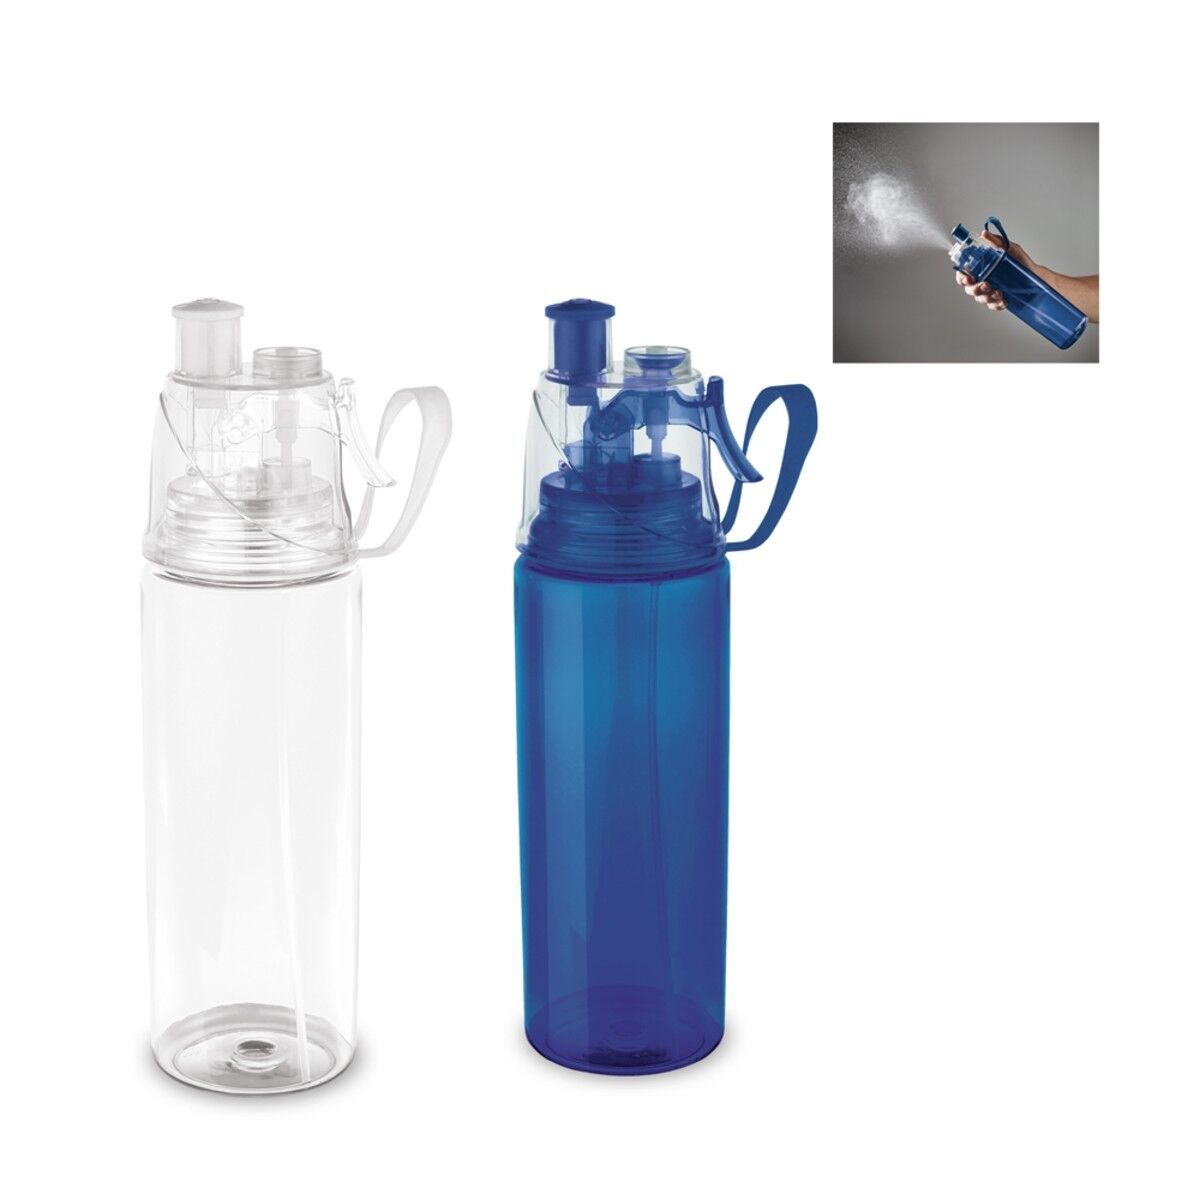 Push-Pull Sports Bottle with Vaporizer